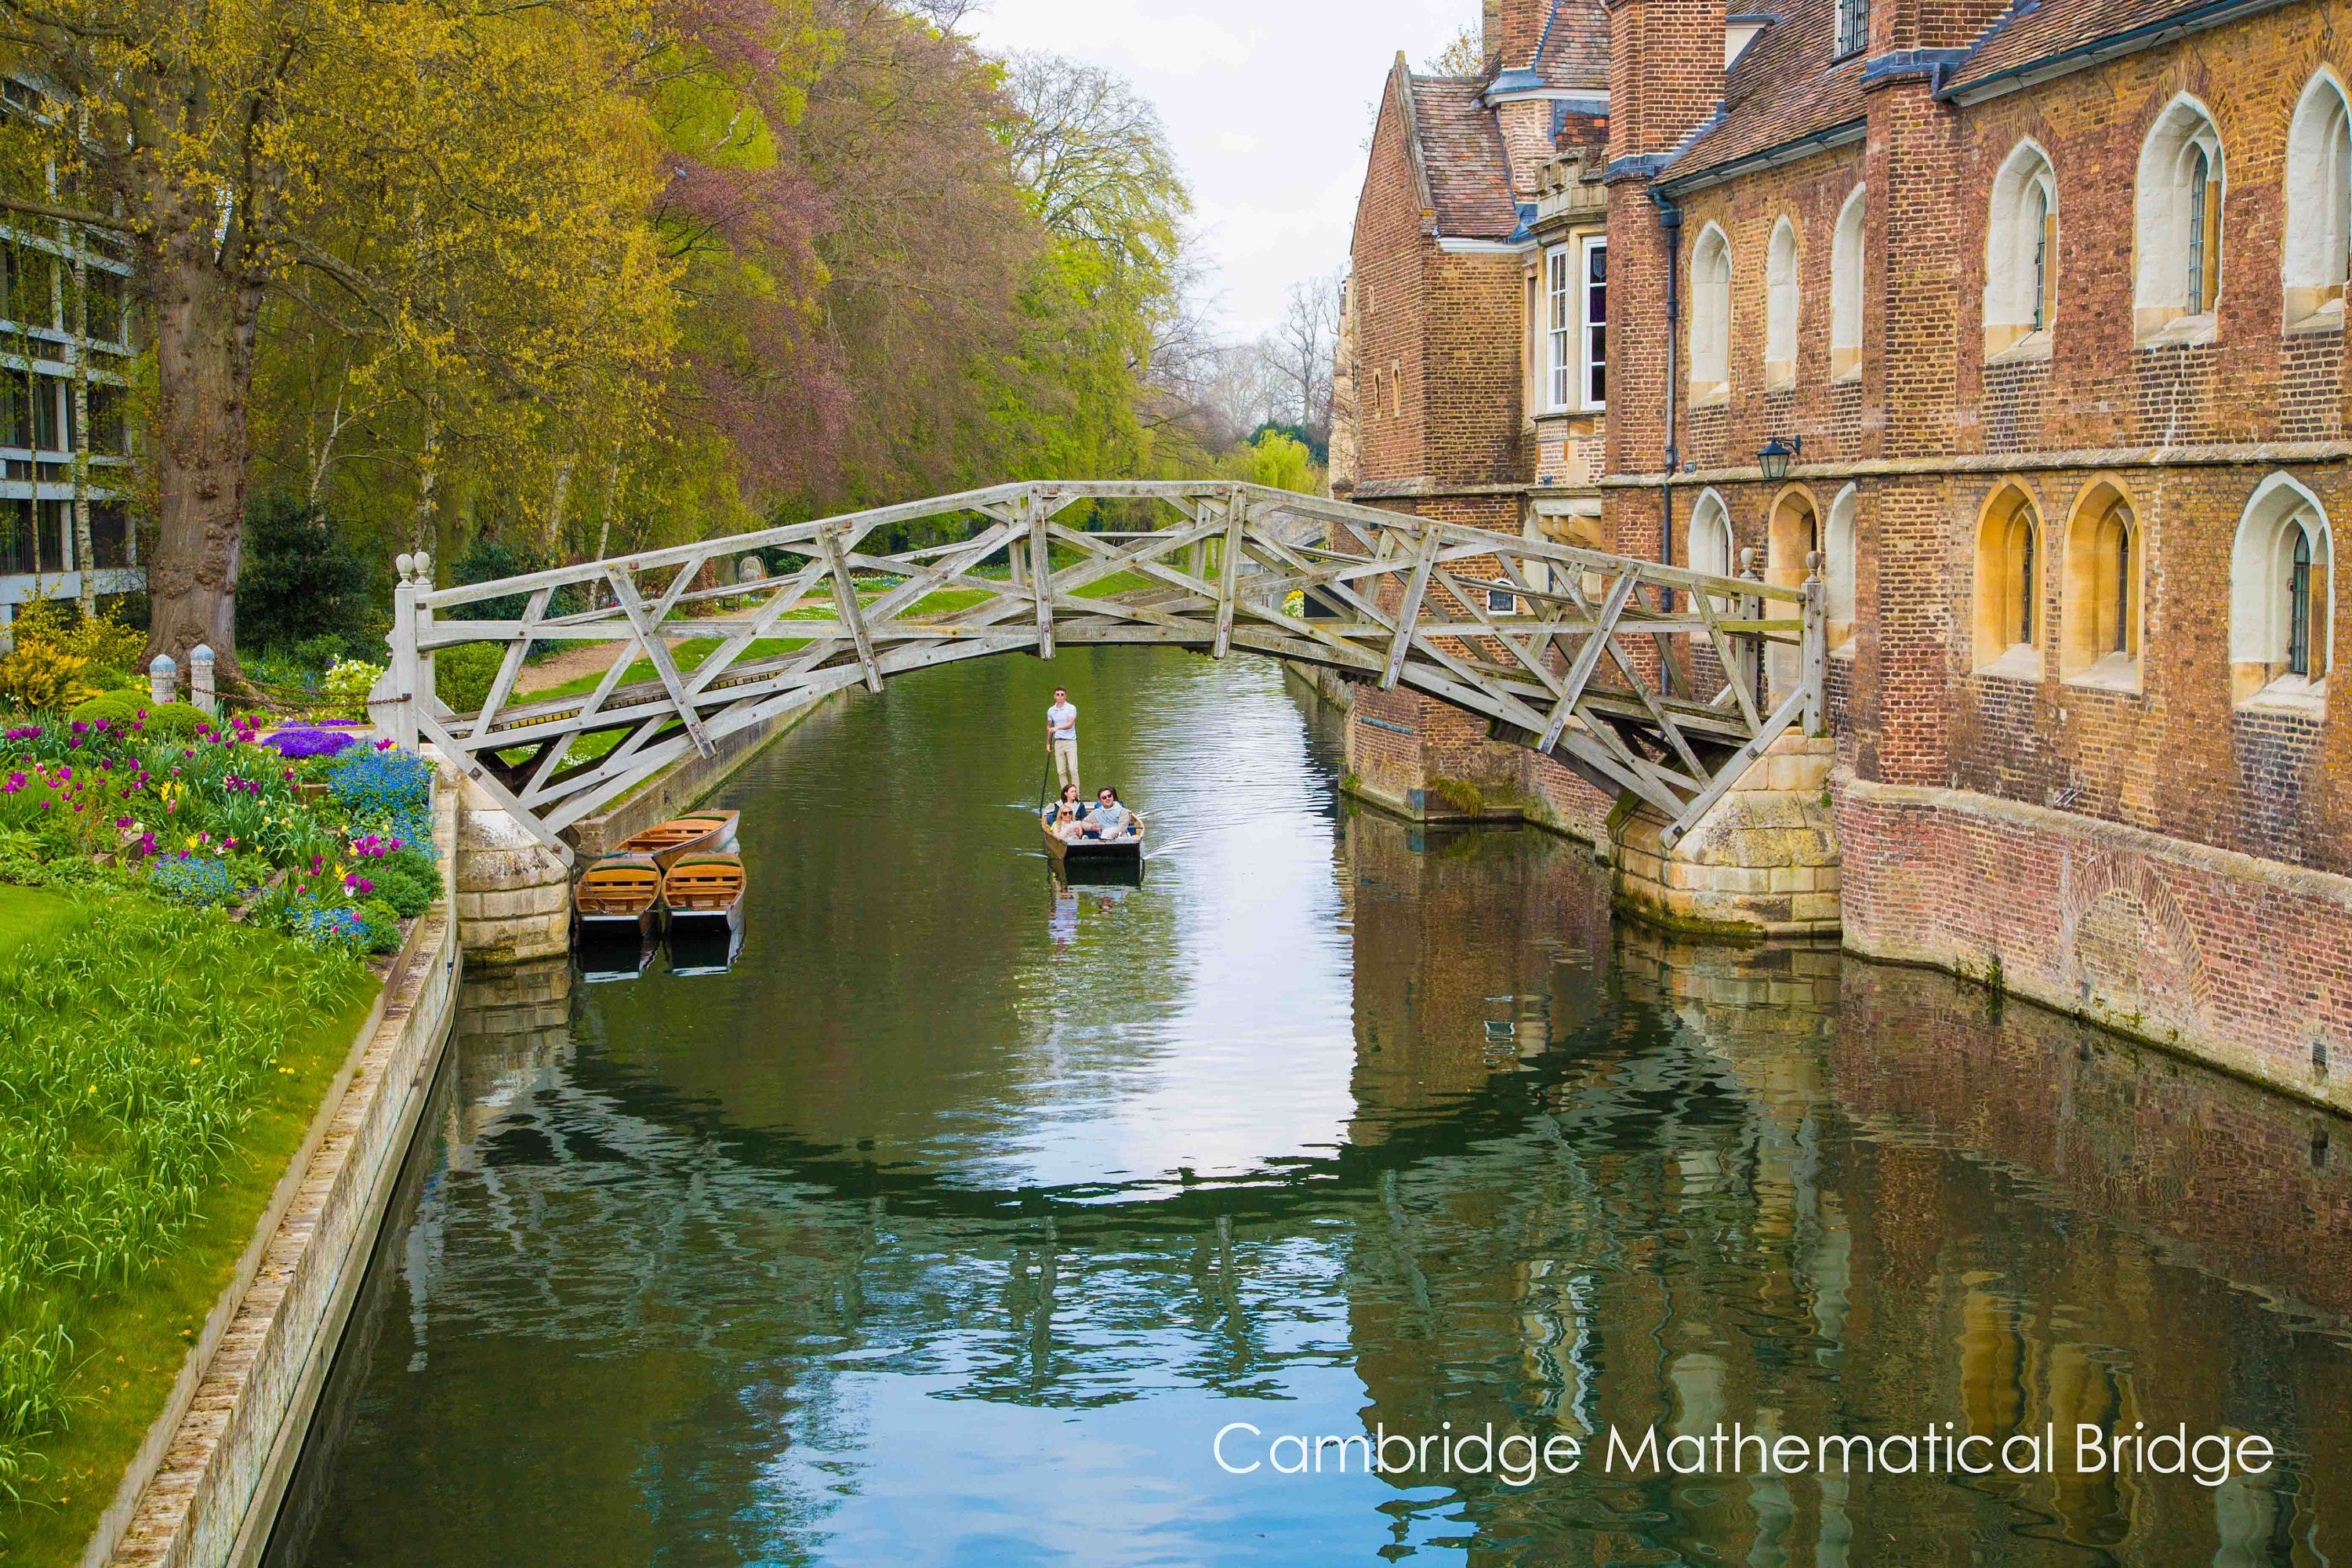 punting on the river cam in Cambridge fine art print showing the mathematical bridge and queens college cambridge university available in a range of sizes and finishes including unframed and ready to hang in colour